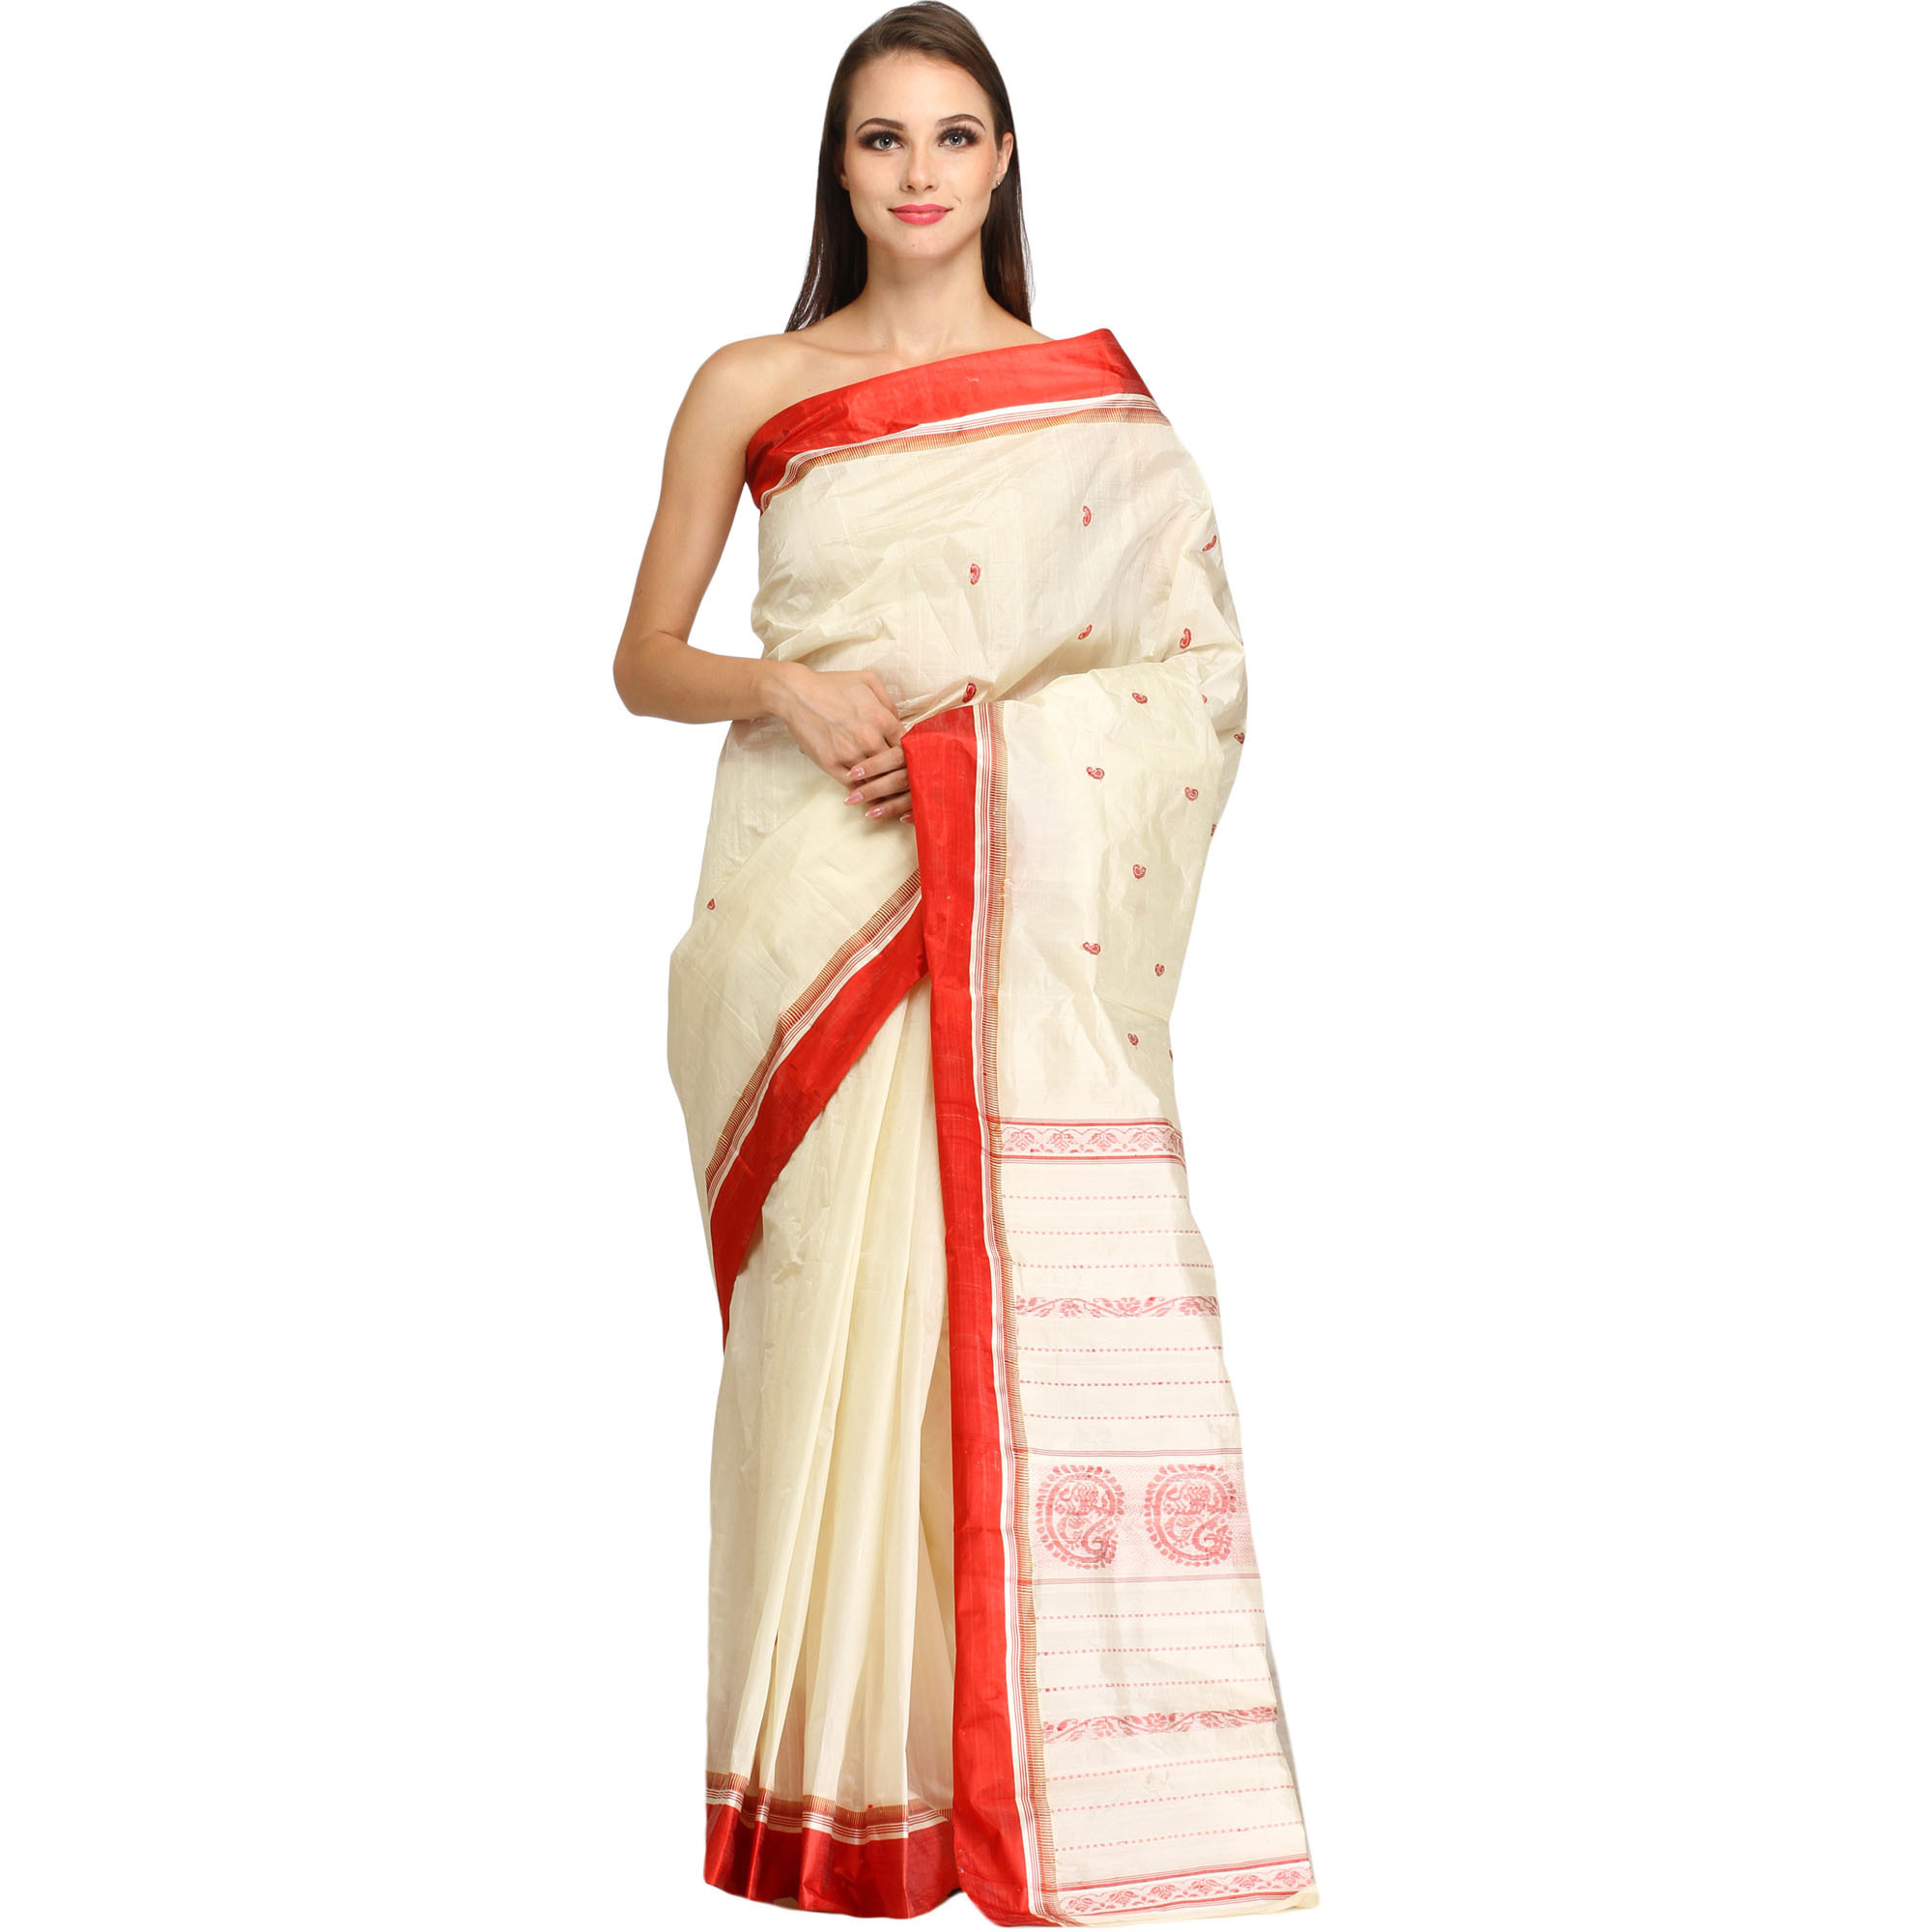 Ivory Garad Sari from Gandhi Ashram with Woven Bootis and Solid Border